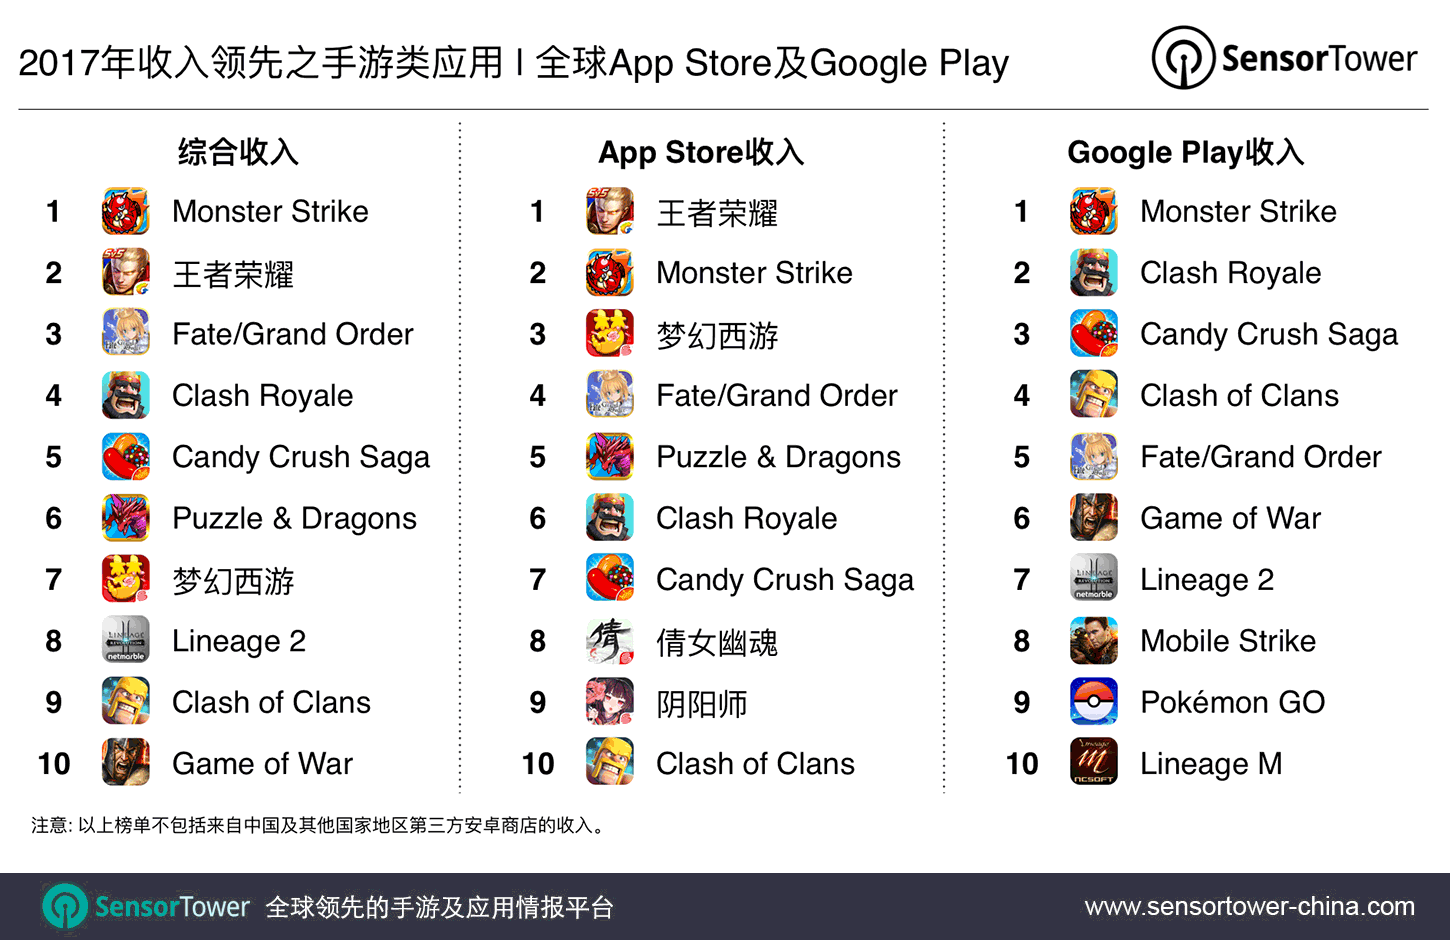 2017's Top Mobile Games by Revenue CN